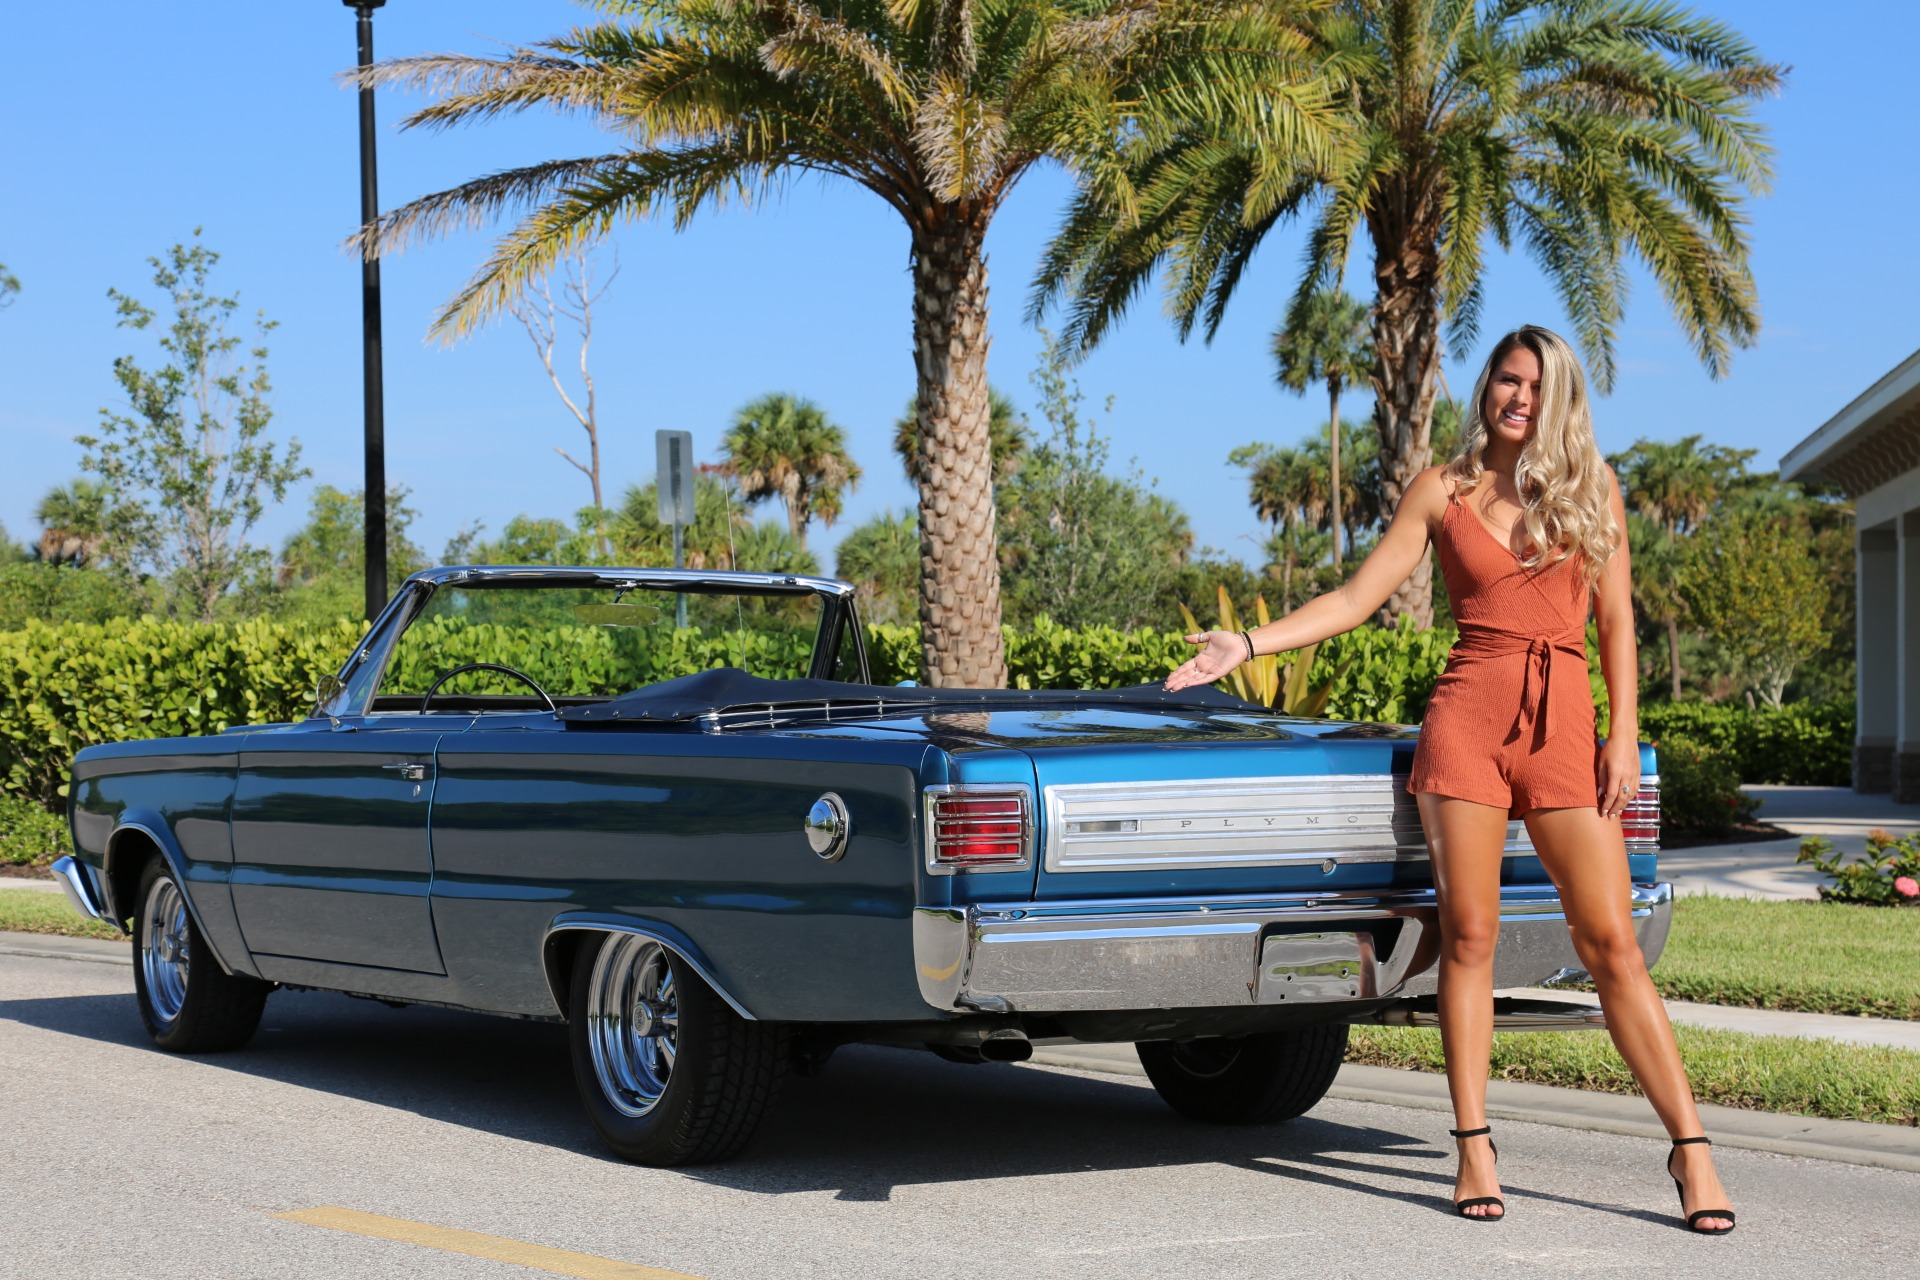 Used 1966 Plymouth Belvedere 383 V8 for sale Sold at Muscle Cars for Sale Inc. in Fort Myers FL 33912 5